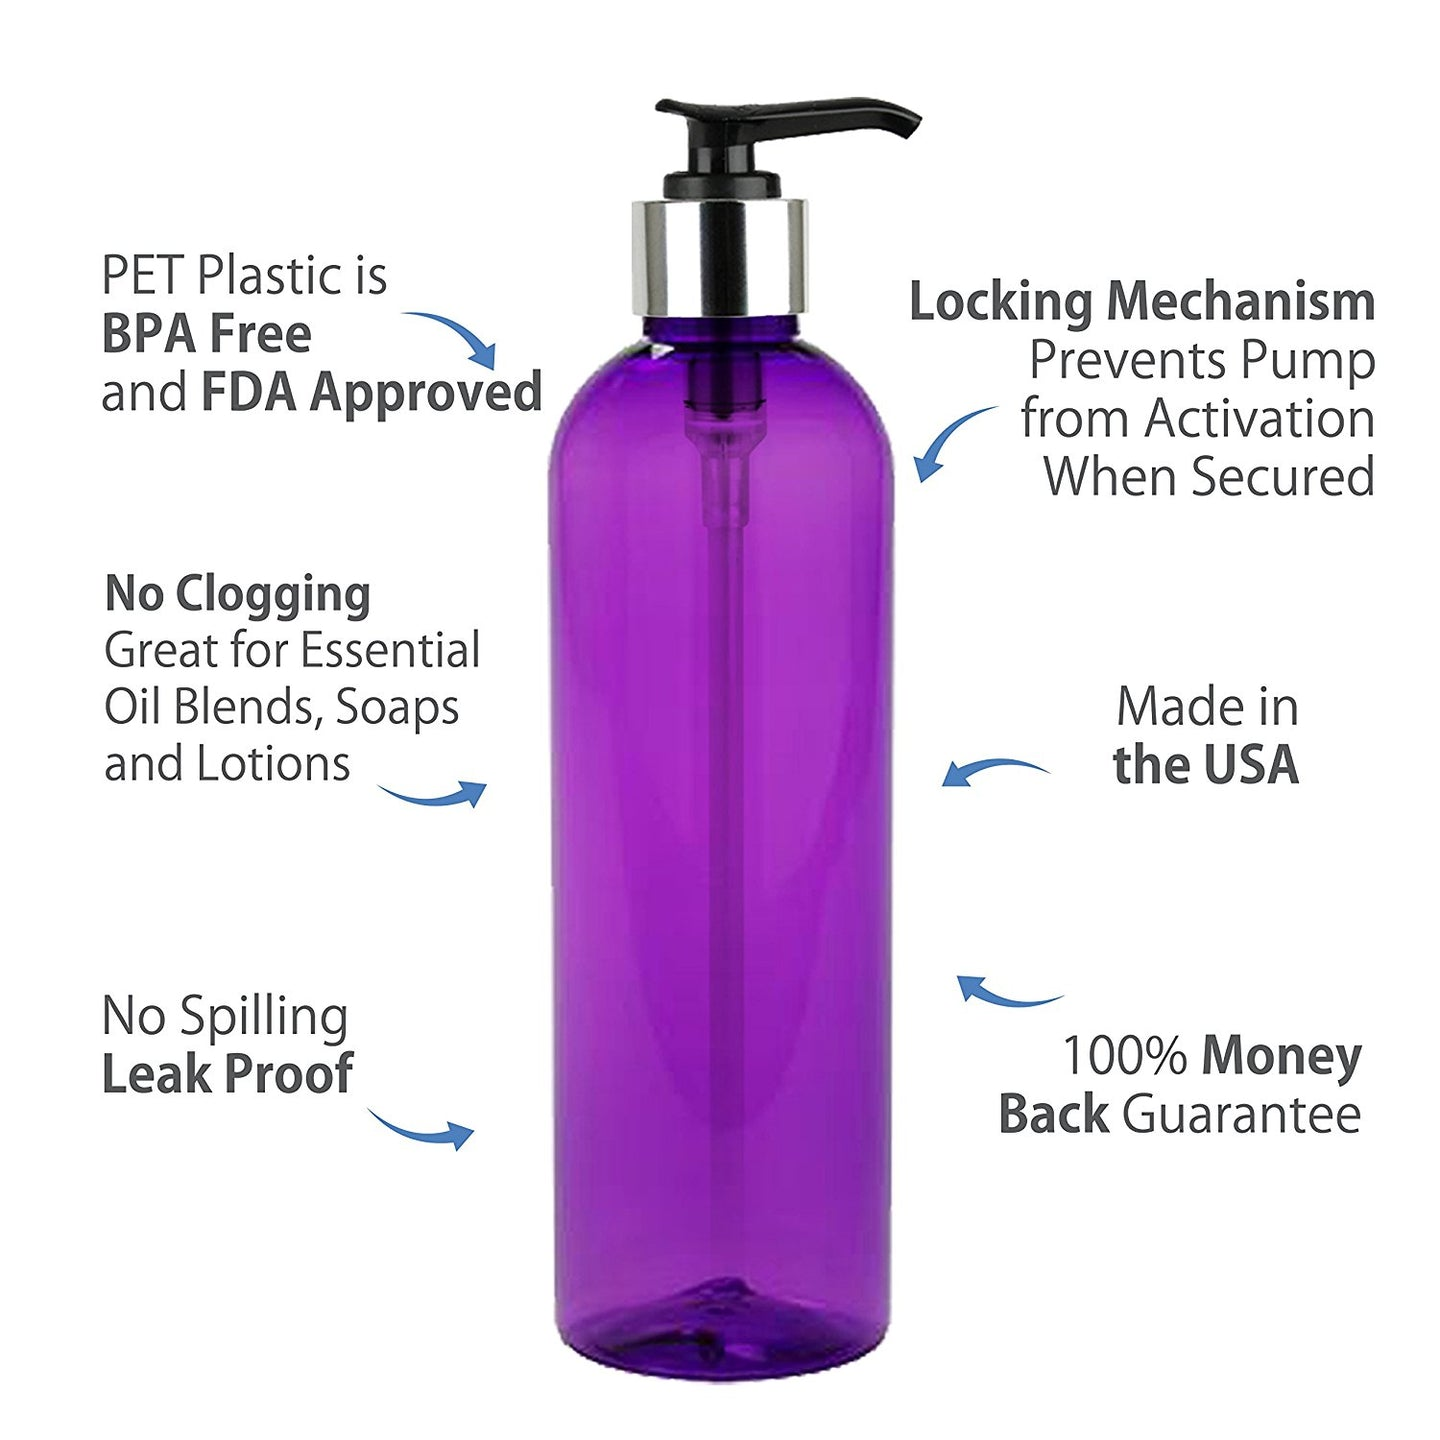 MoYo Natural Labs 8 oz Pump Dispenser, Empty Soap and Lotion Bottles with Locking Cap, BPA Free PET Plastic Containers for Essential Oils/Liquids (2 Pack, Purple)